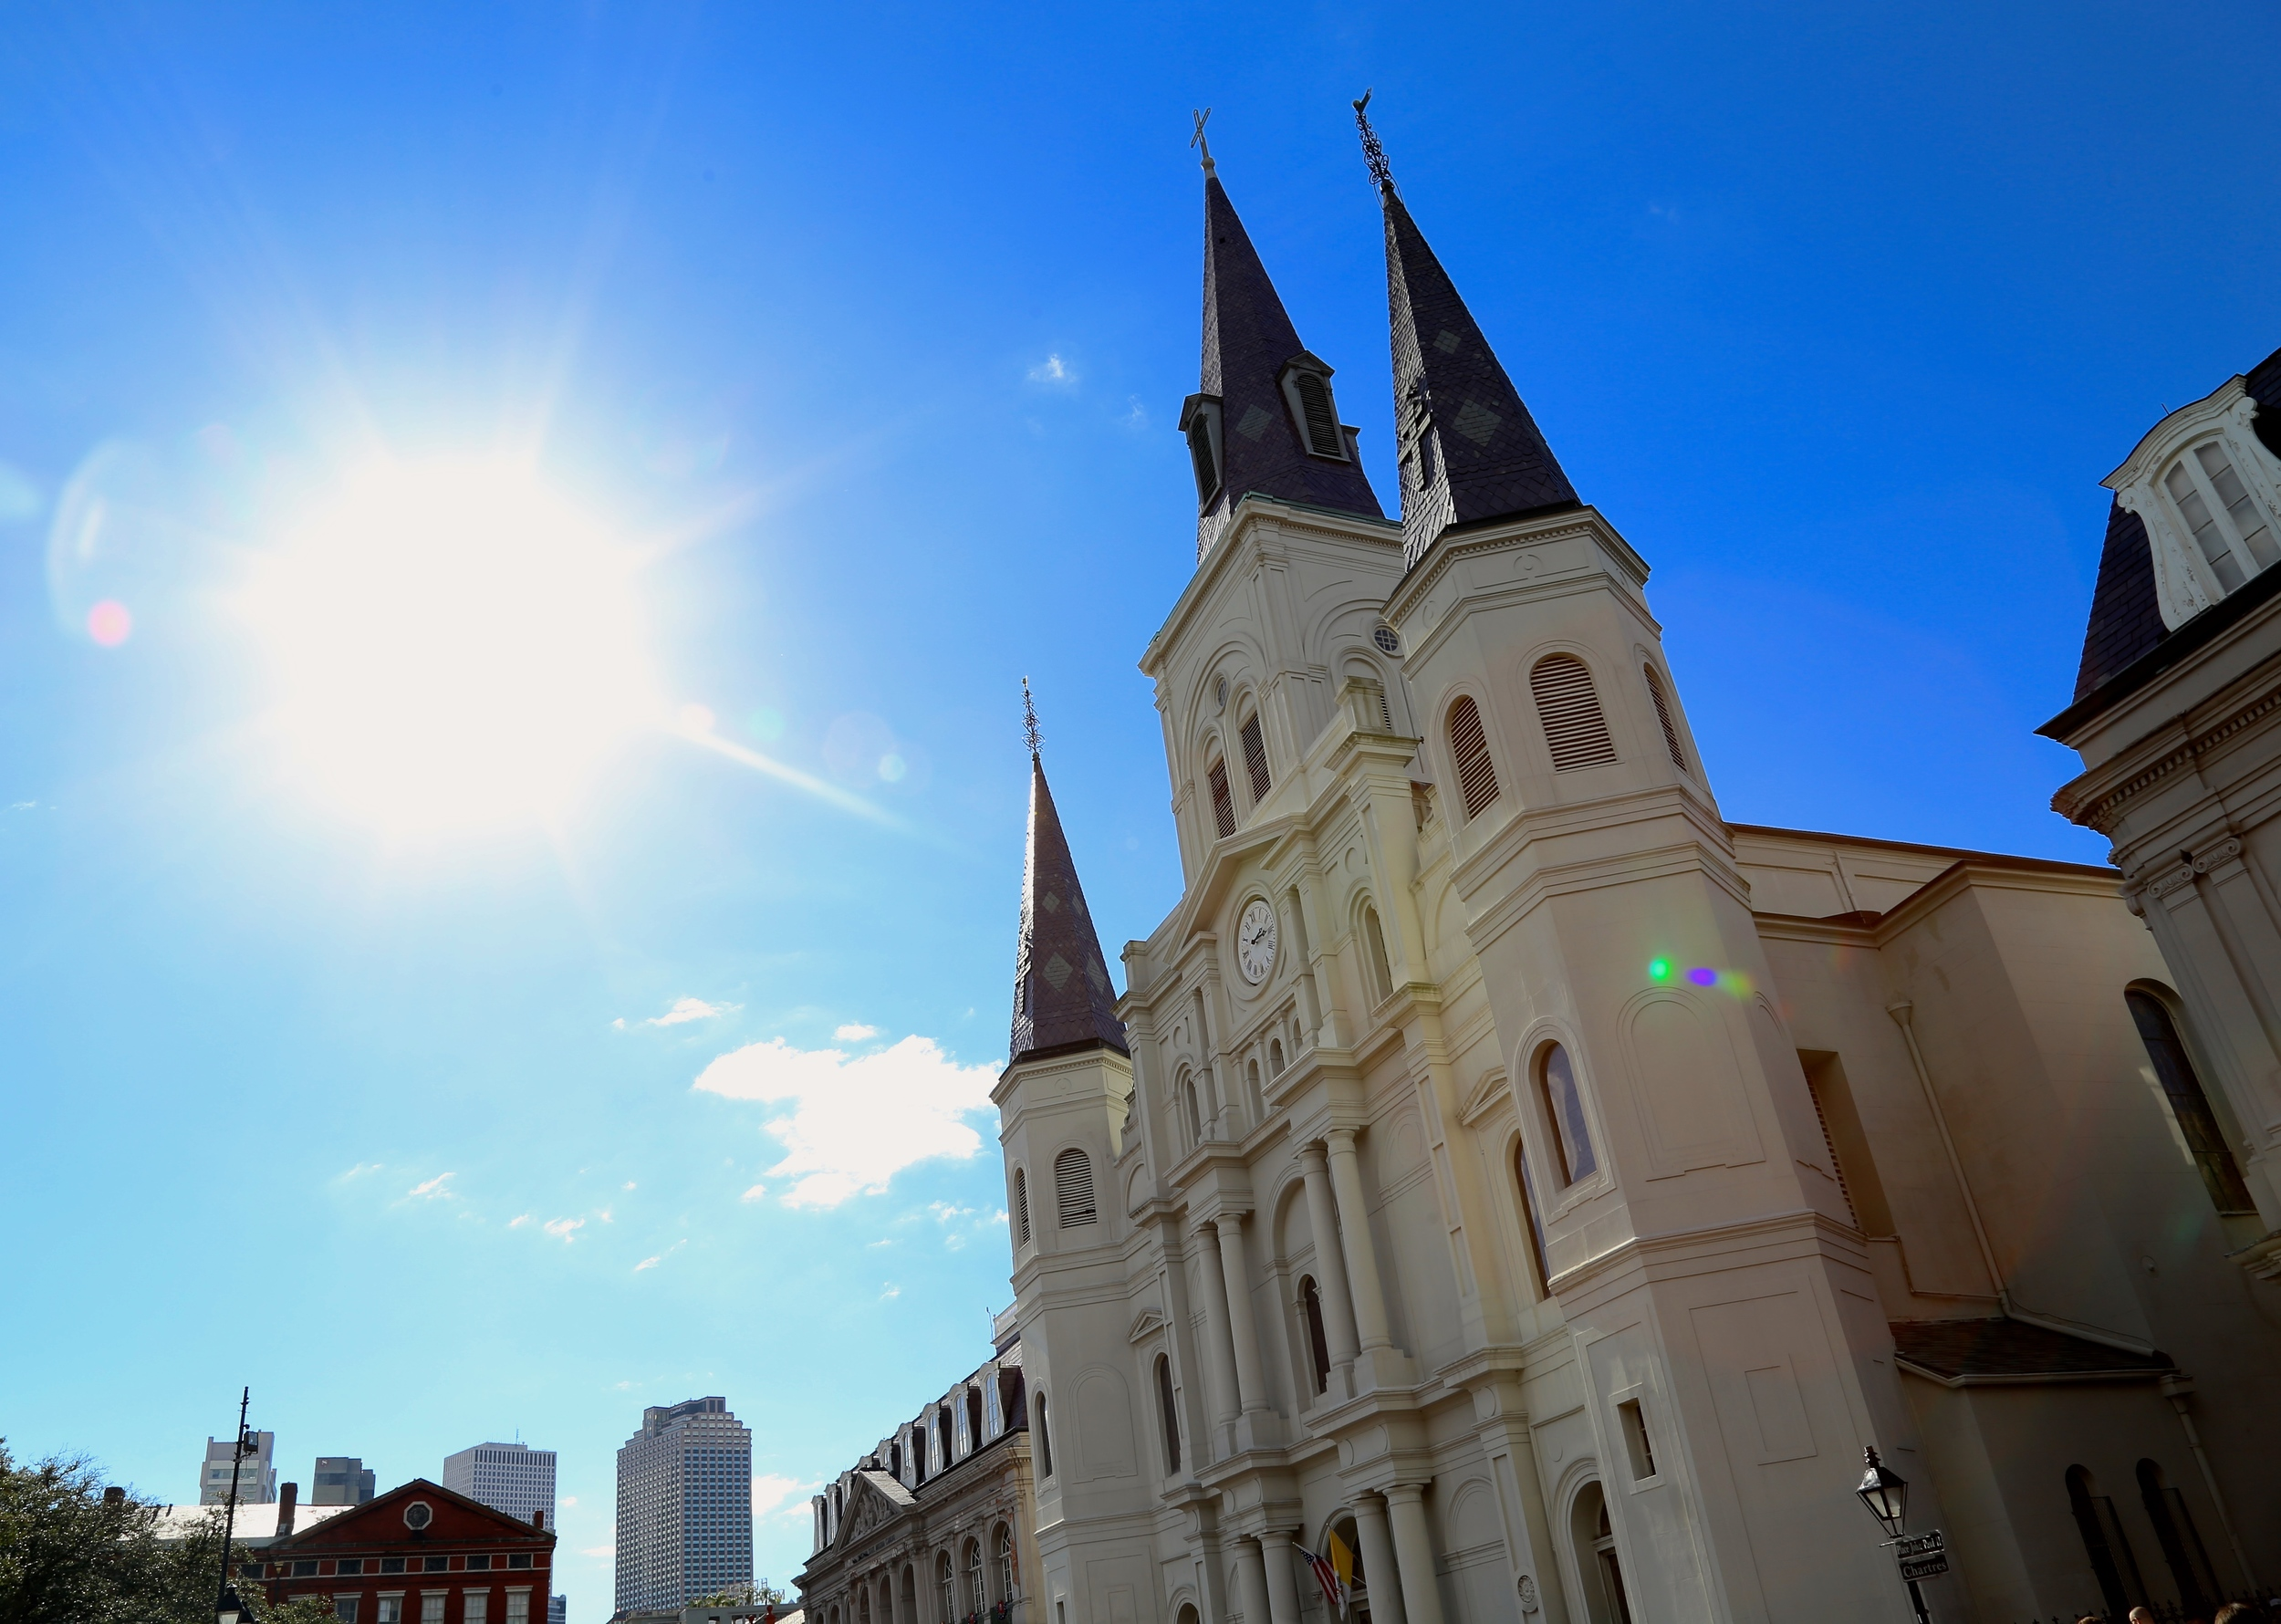 St. Louis Cathedral enrique bernal ejay tattoo.JPG